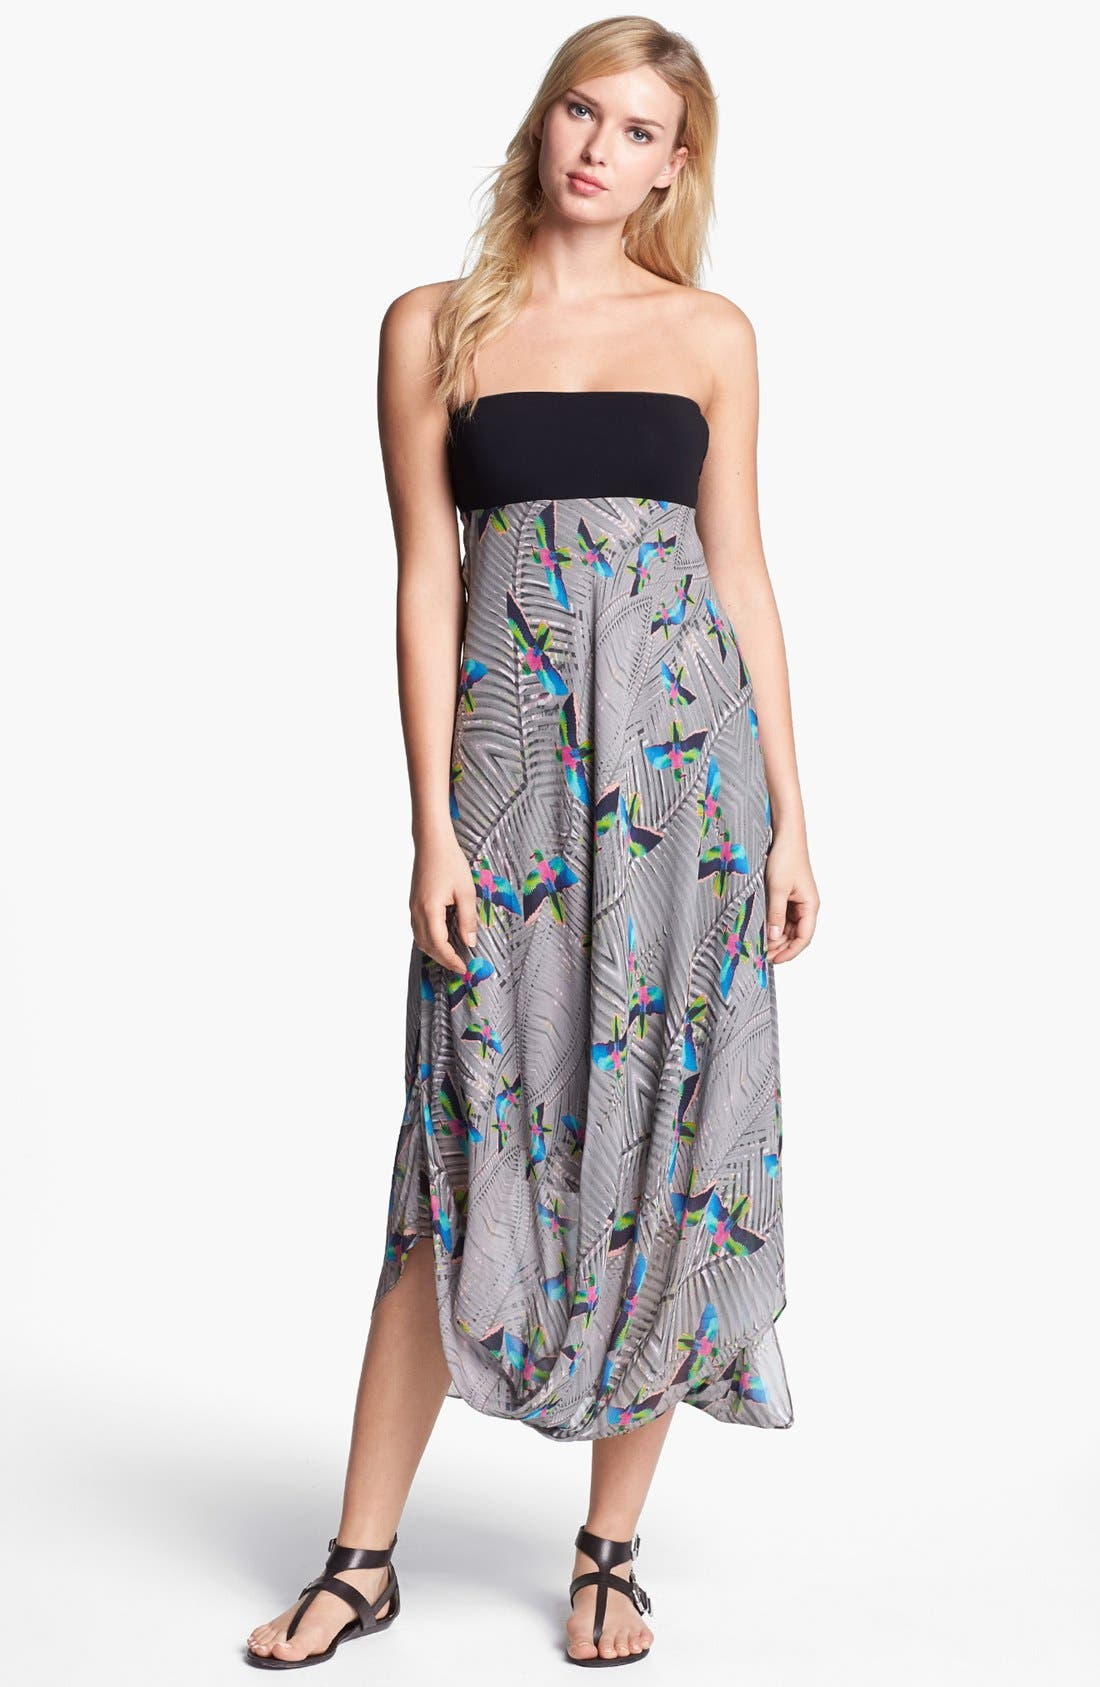 Main Image - Nicole Miller 'Jungle Bird' Print Strapless Midi Dress